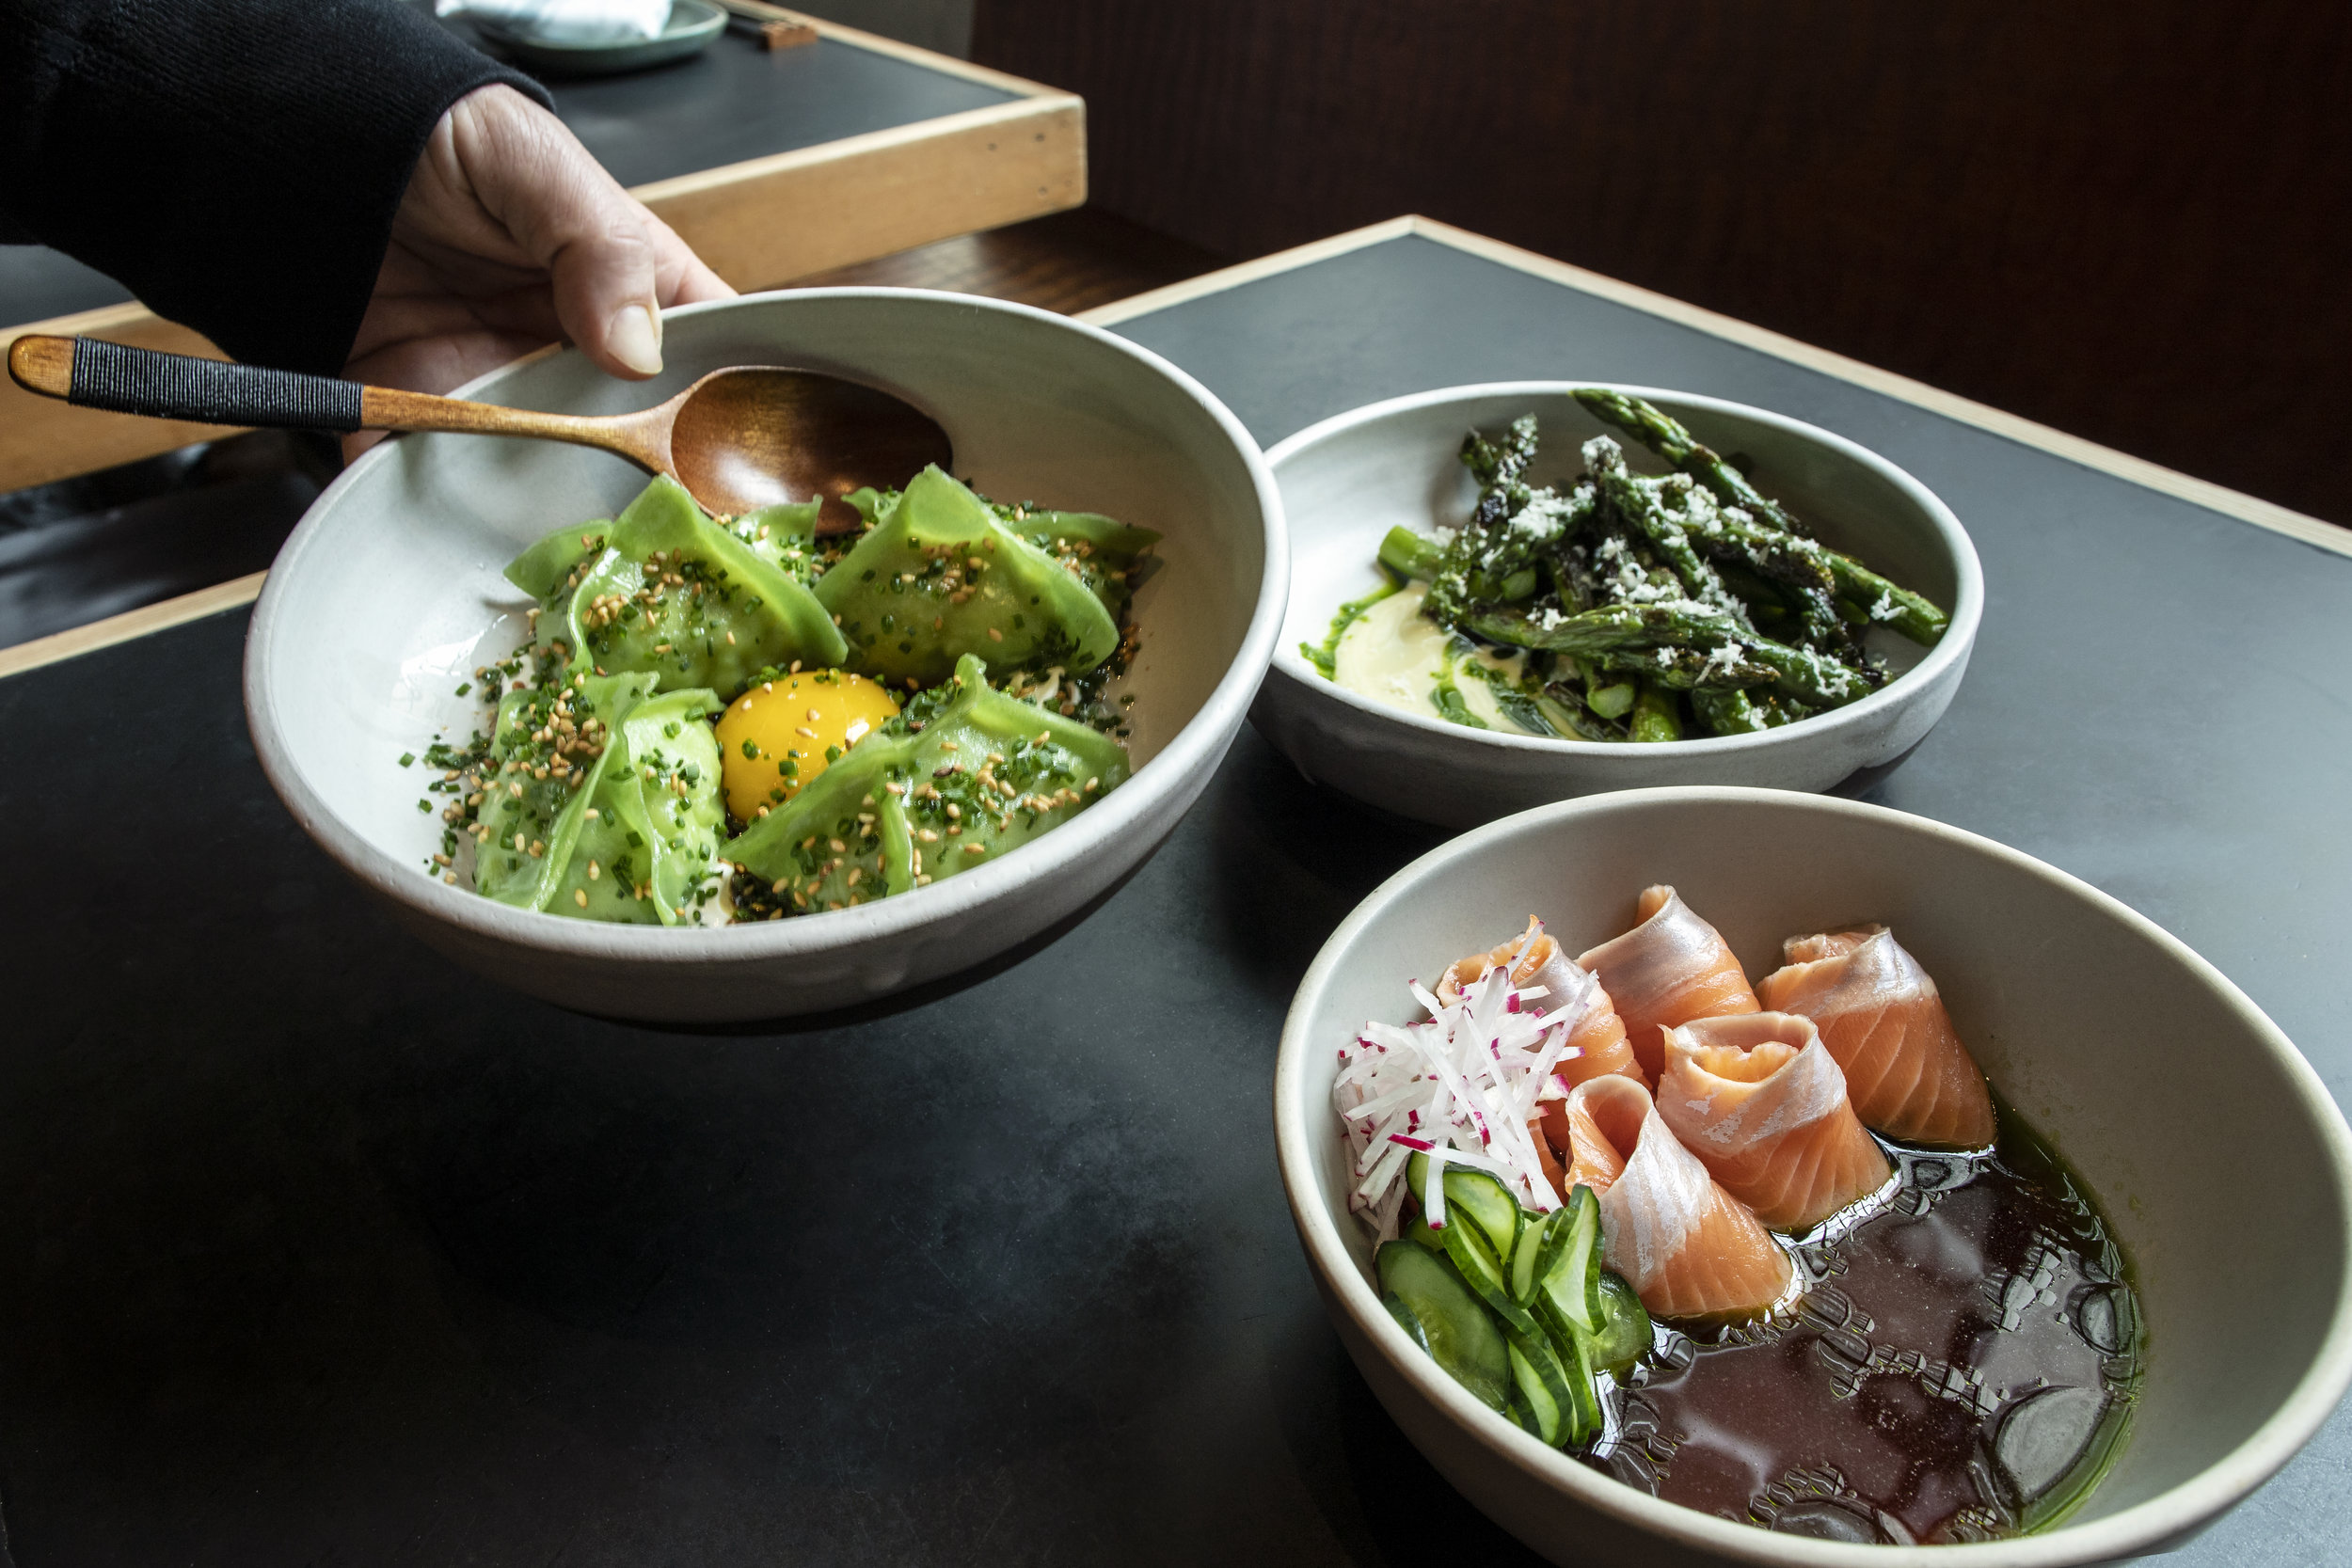 Onsen's Poke, asparagus skewers and grilled artichoke